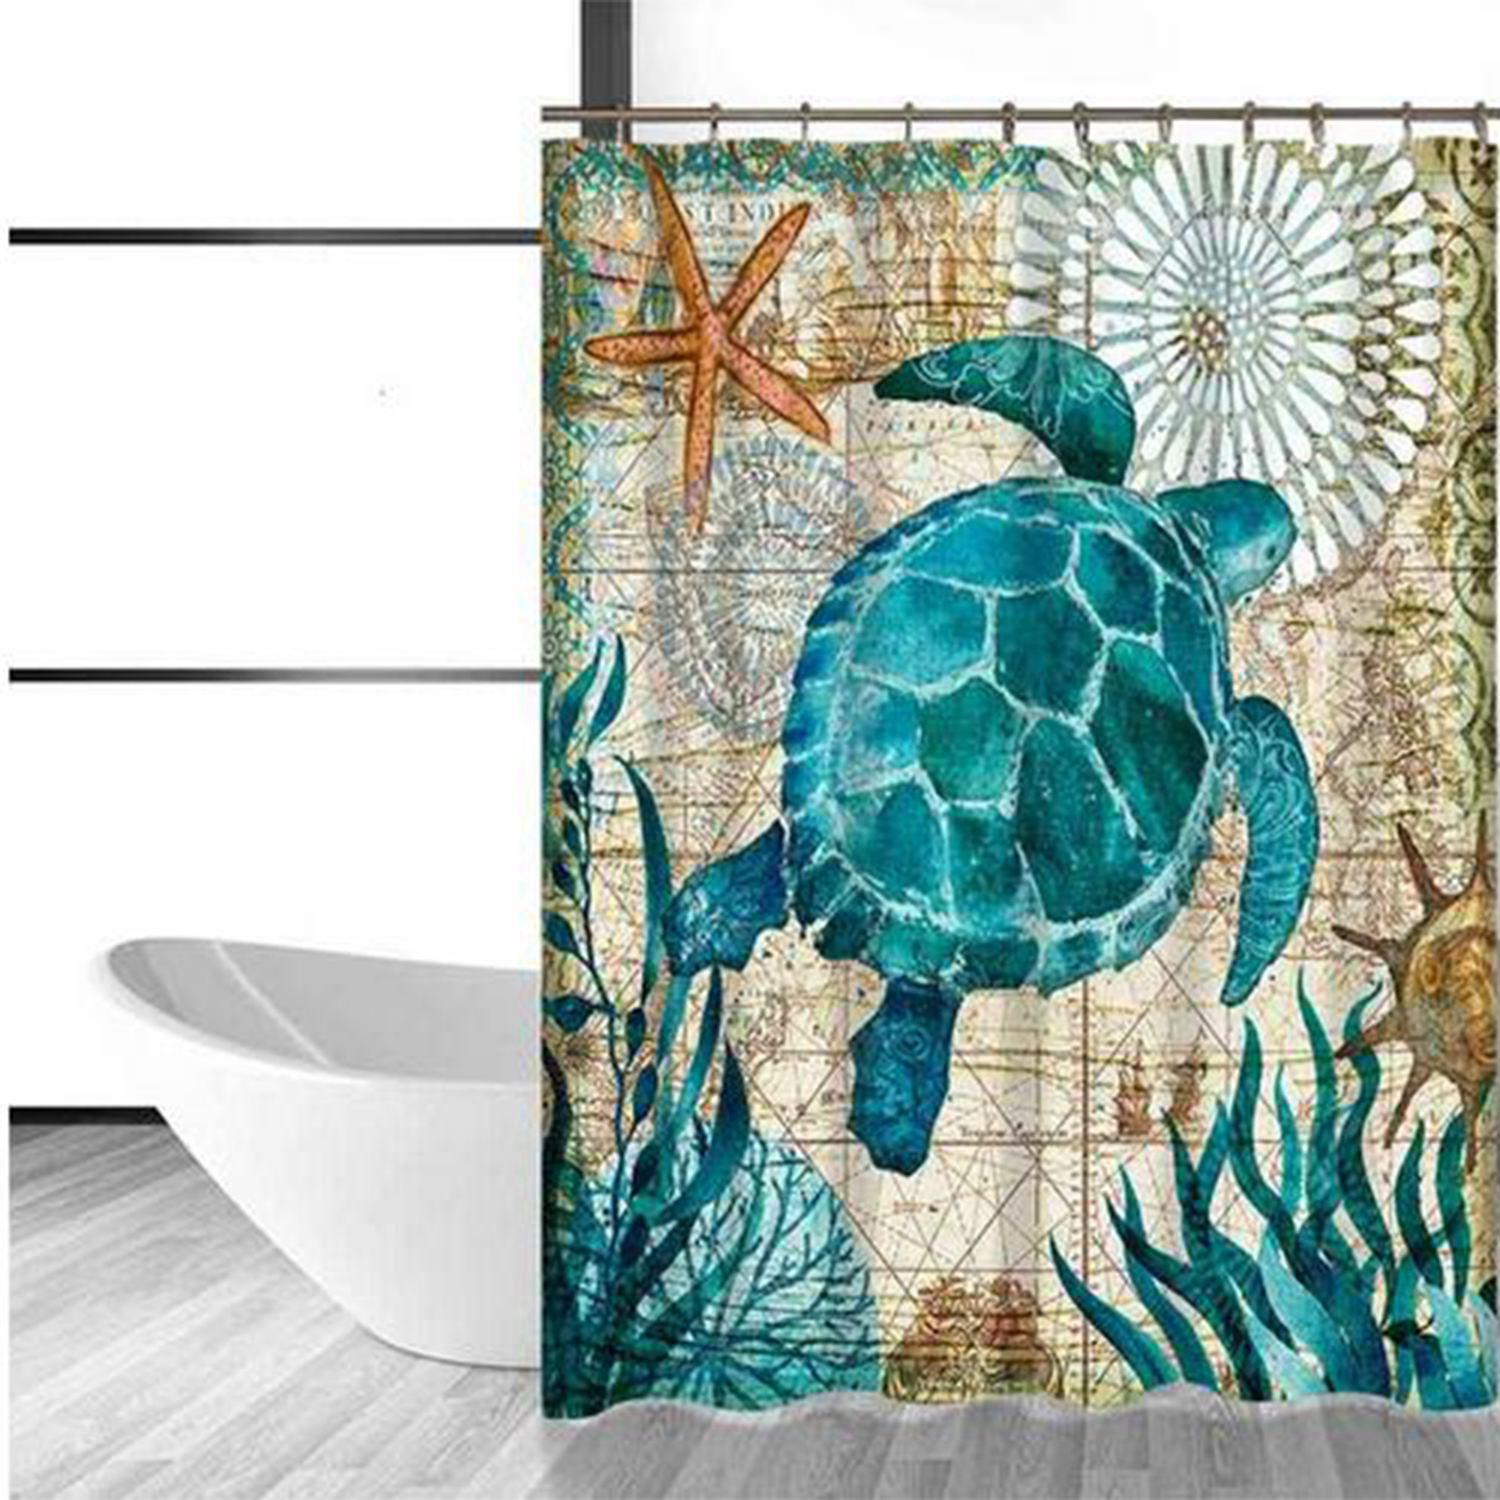 Us 8 19 24 Off Sea Turtle Waterproof Shower Curtain Octopus Home Bathroom Curtains With 12 Hooks Polyester Fabric Bath Curtain In Shower Curtains